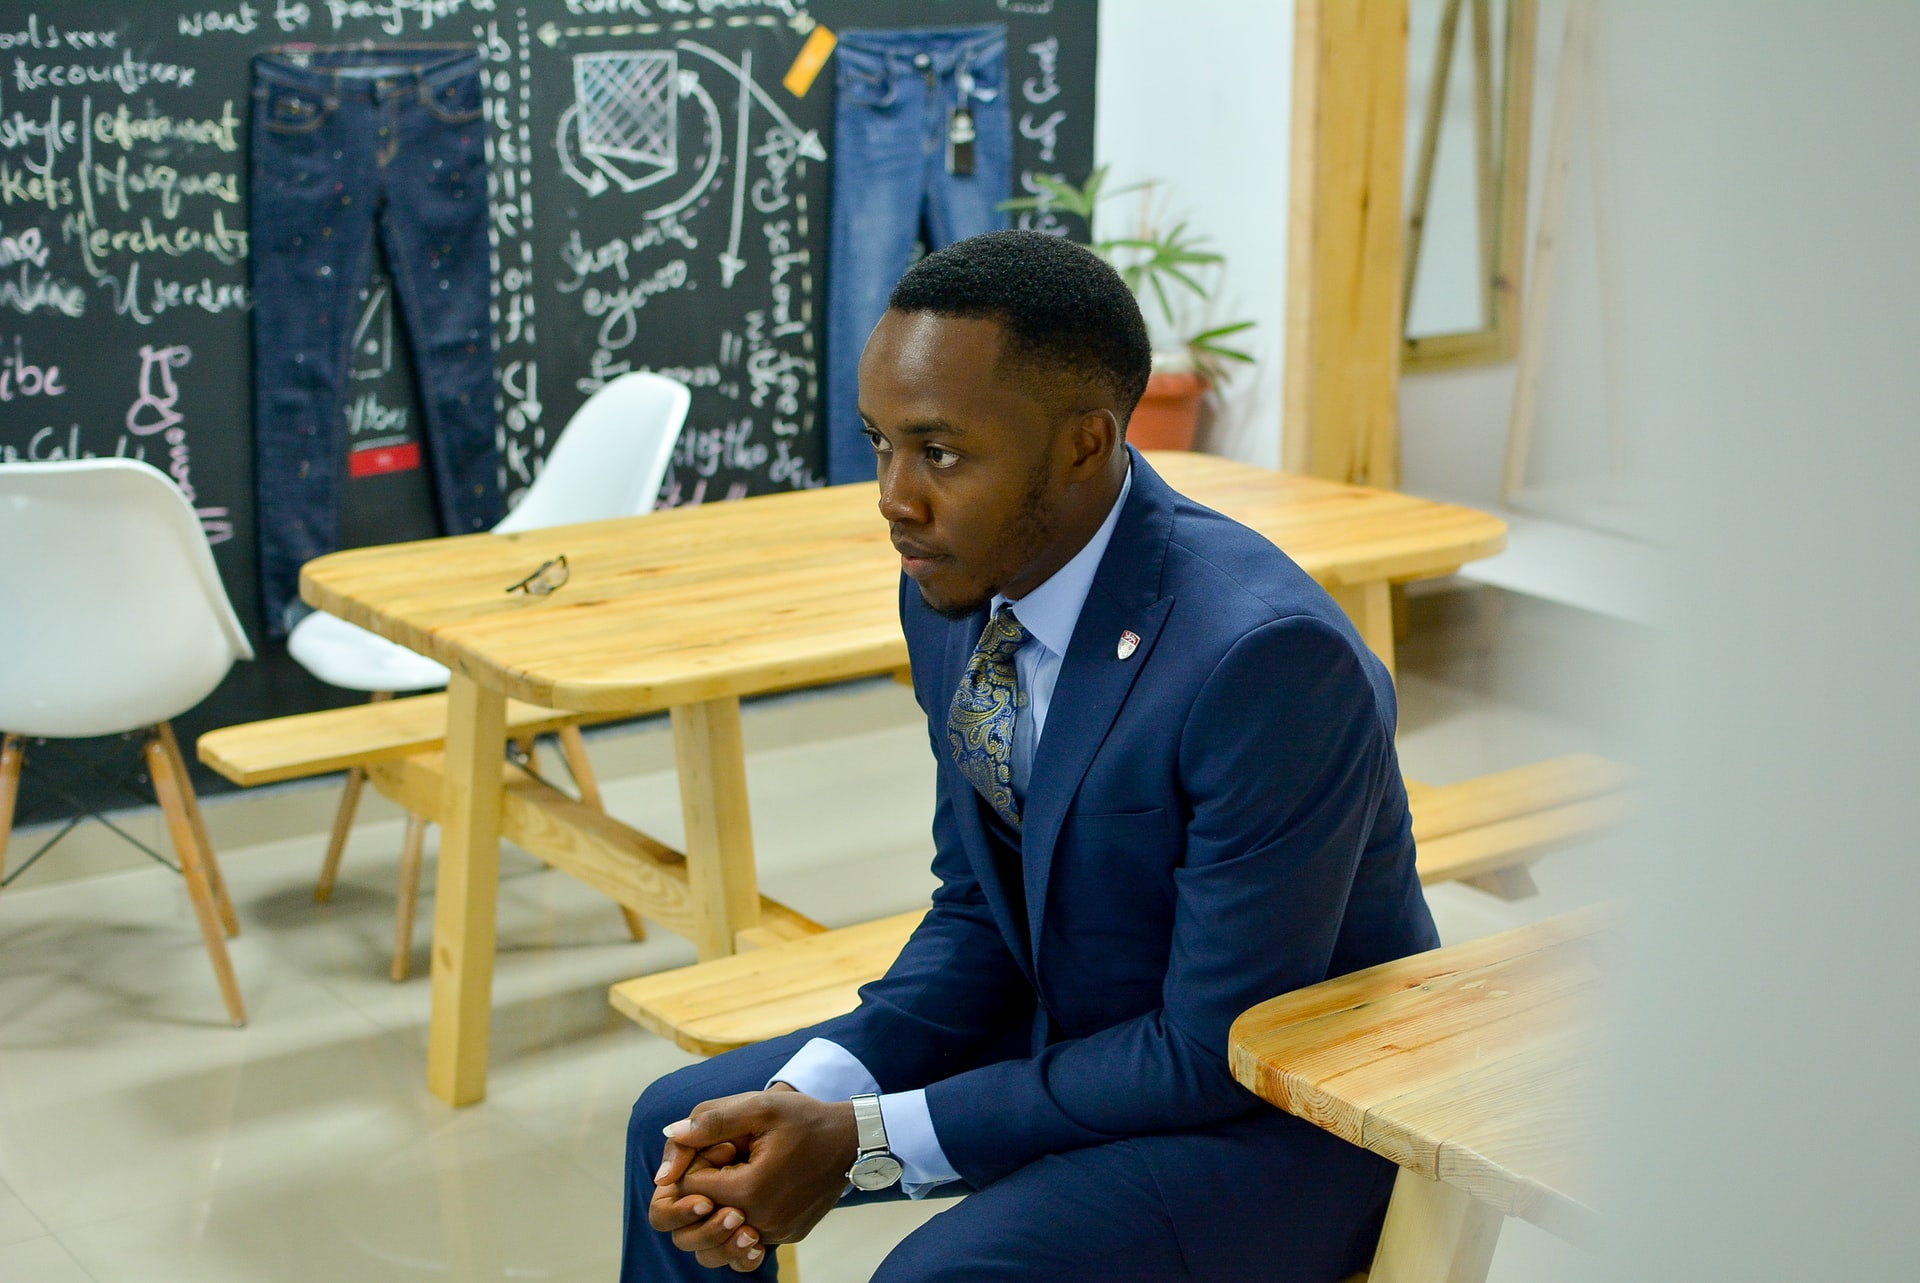 Benjamin Dada, Nigerian tech journalist and founder of DadaBenBlog, discusses changing Africa's narrative and tech in Africa.